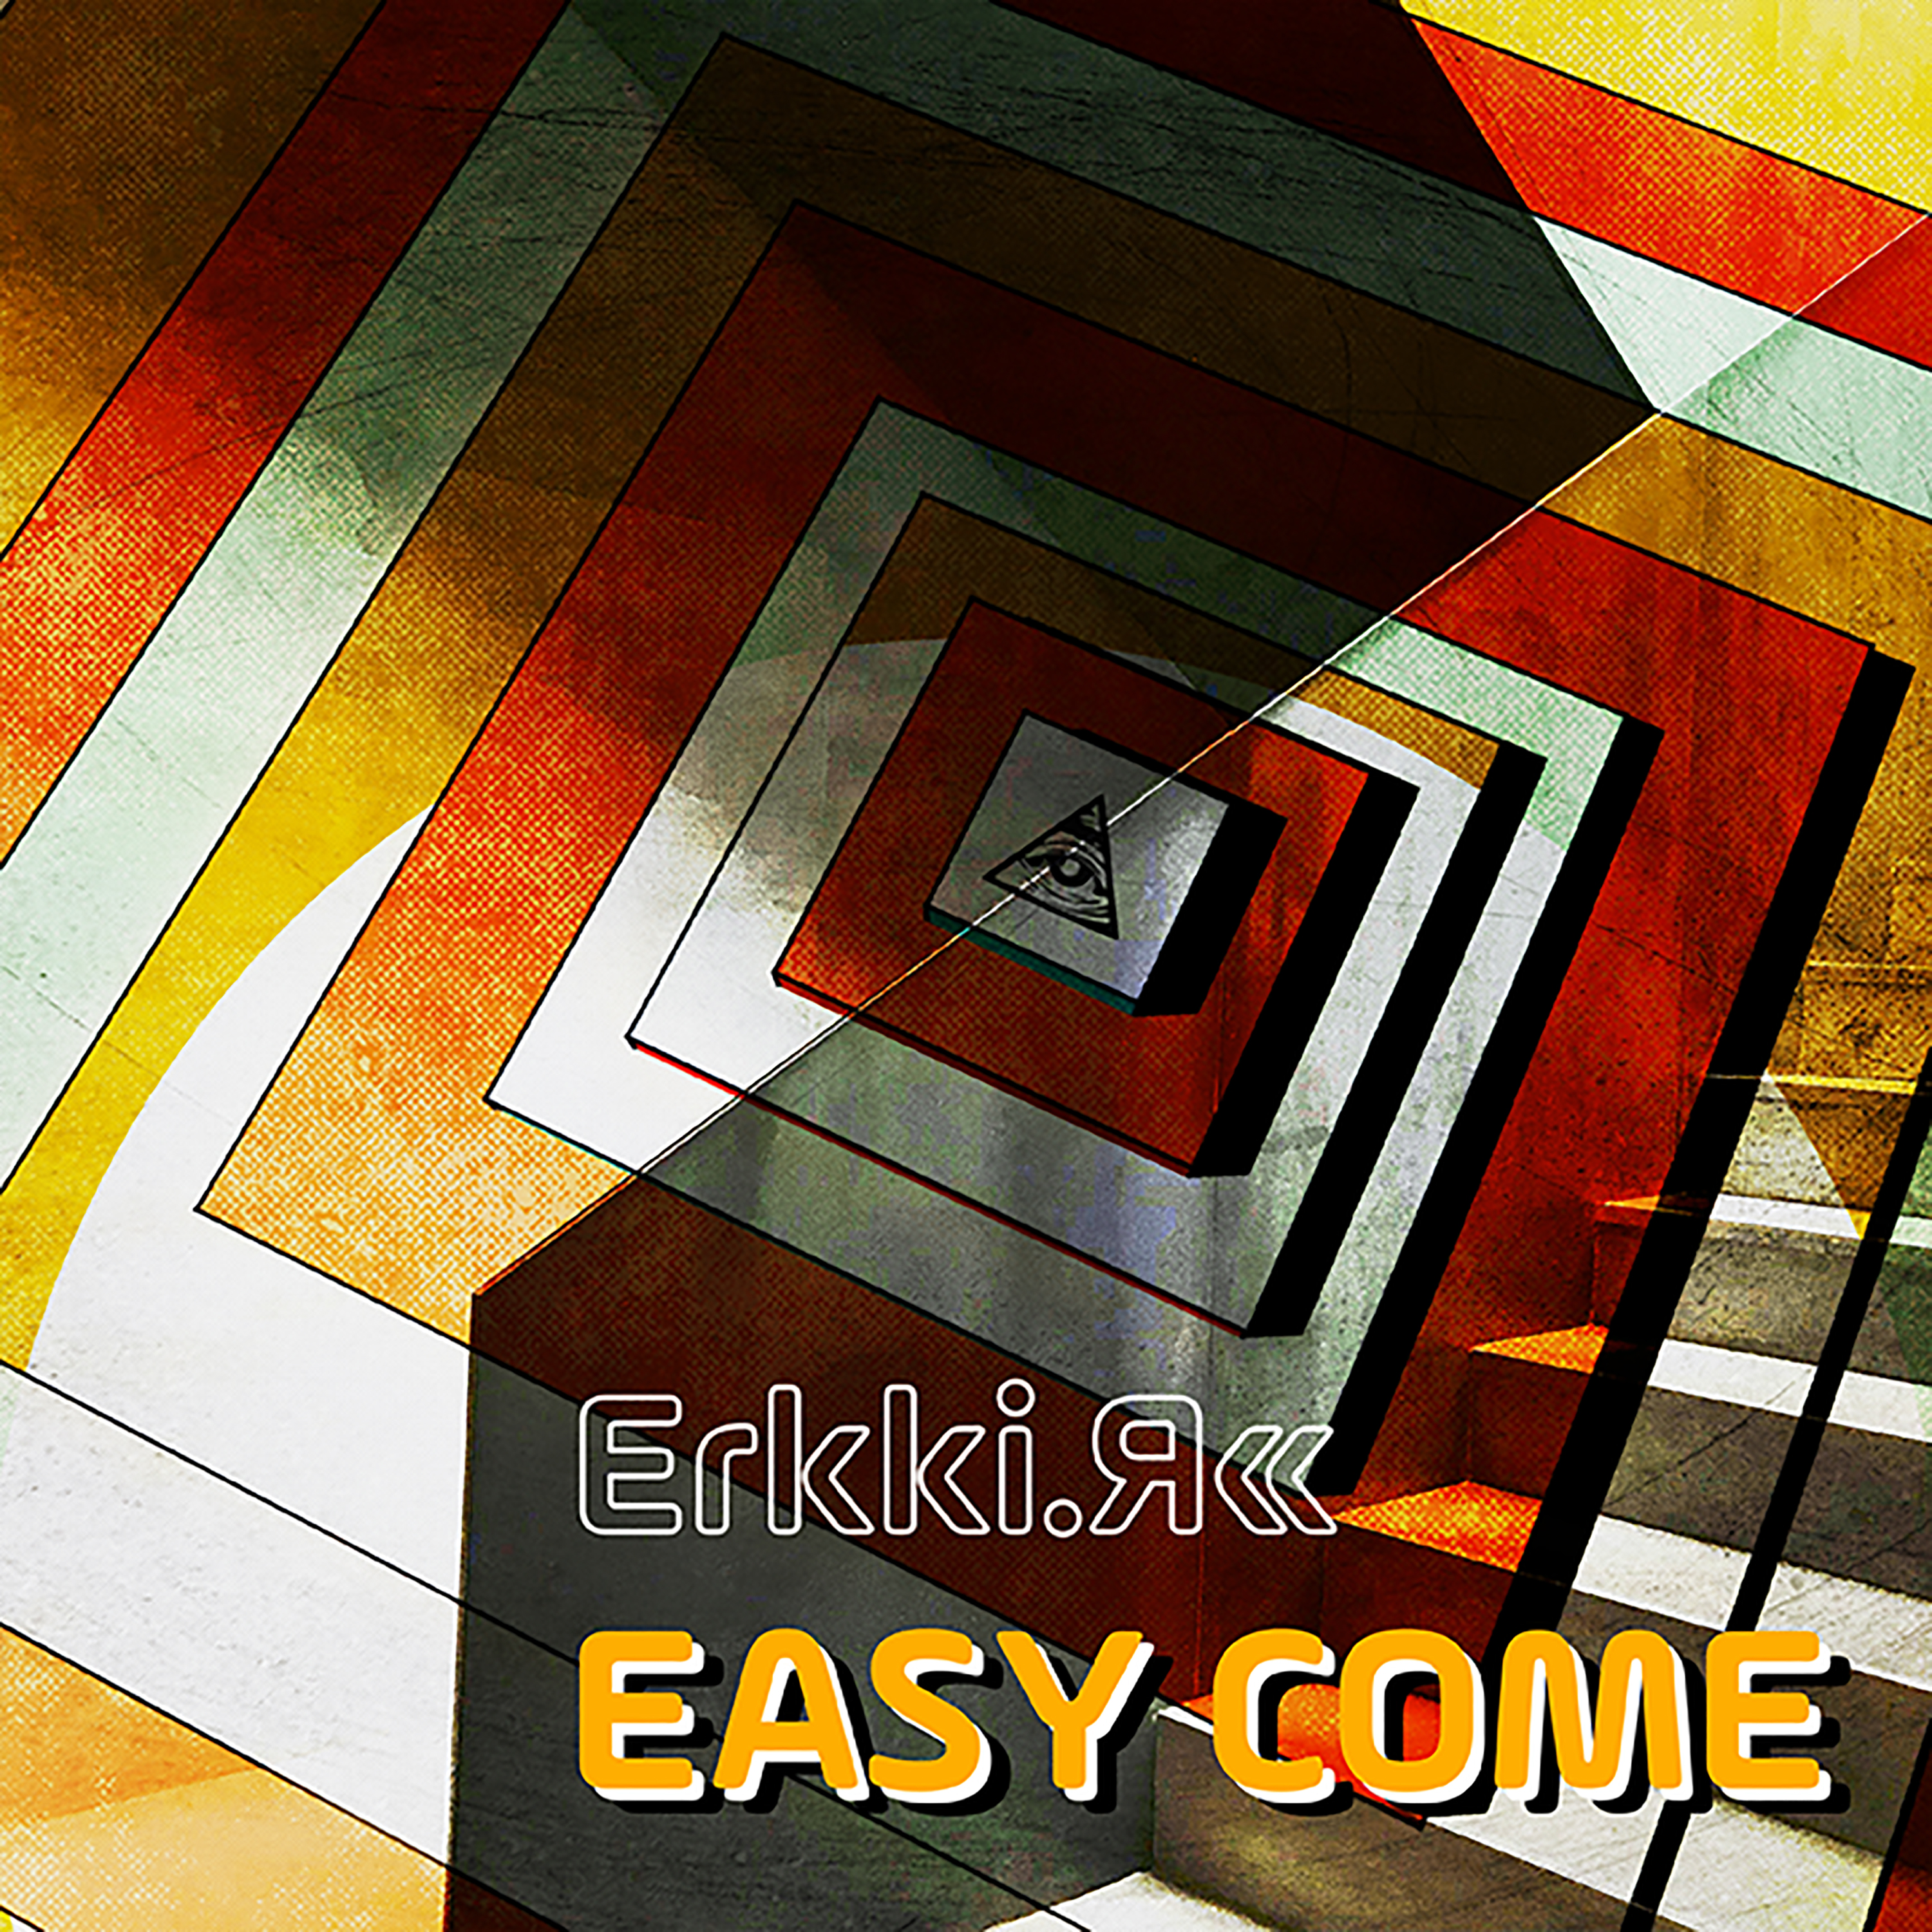 Erkki R Easy Come - New Song - Hot Release - Music Promotion by PPN - Playlist Pitching - Organic - Spotify - Artist Promo Blog